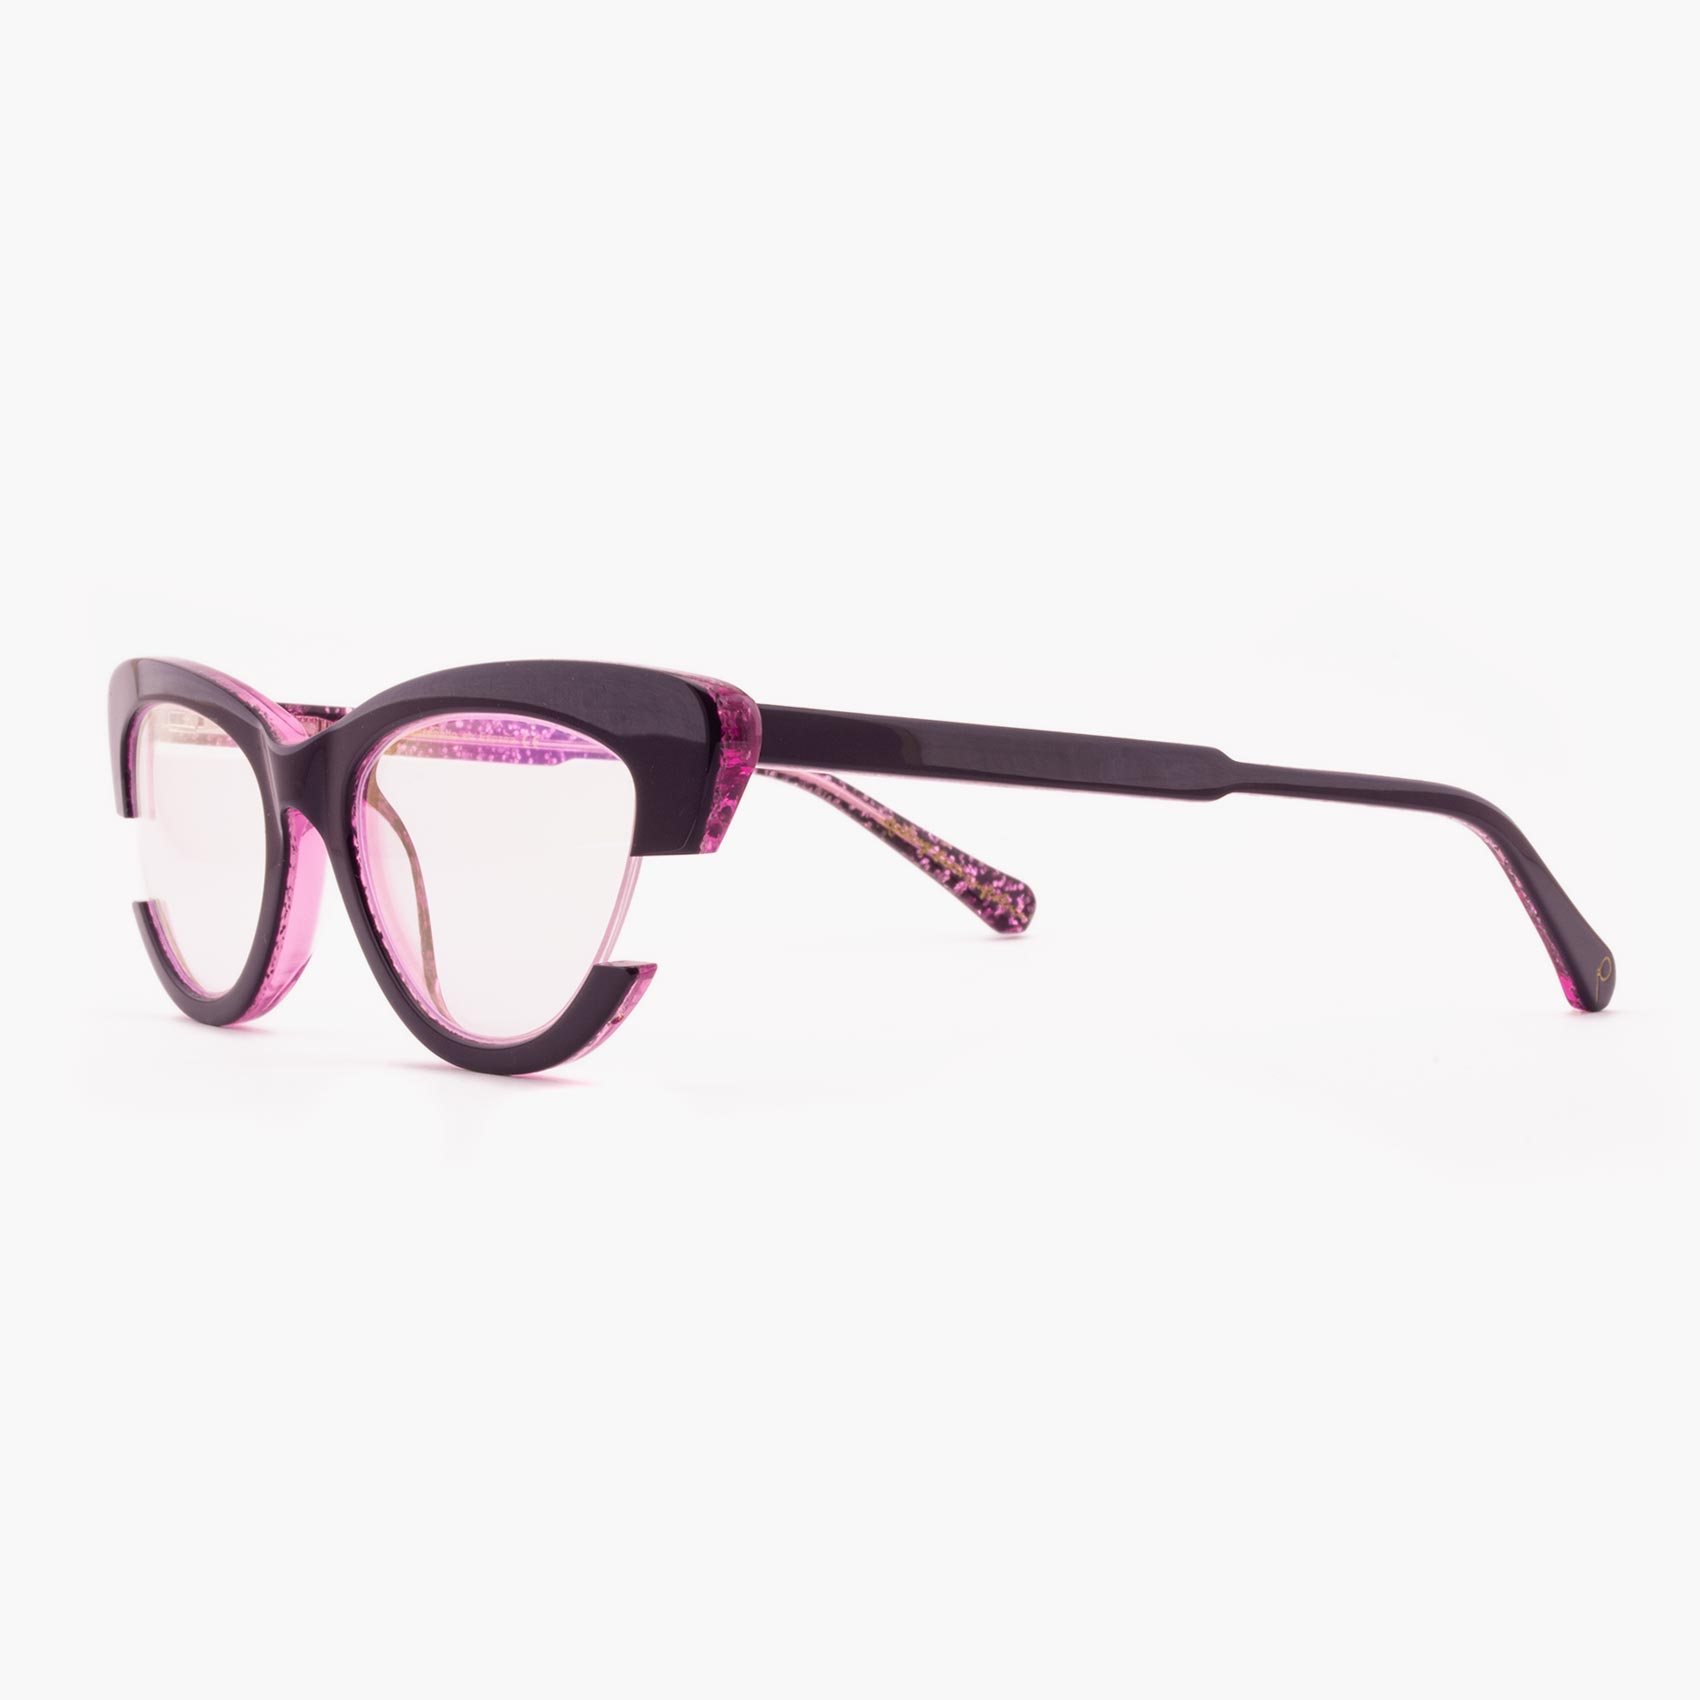 Proud eyewear Jennifer C4 L montura gafas mujer cat eye